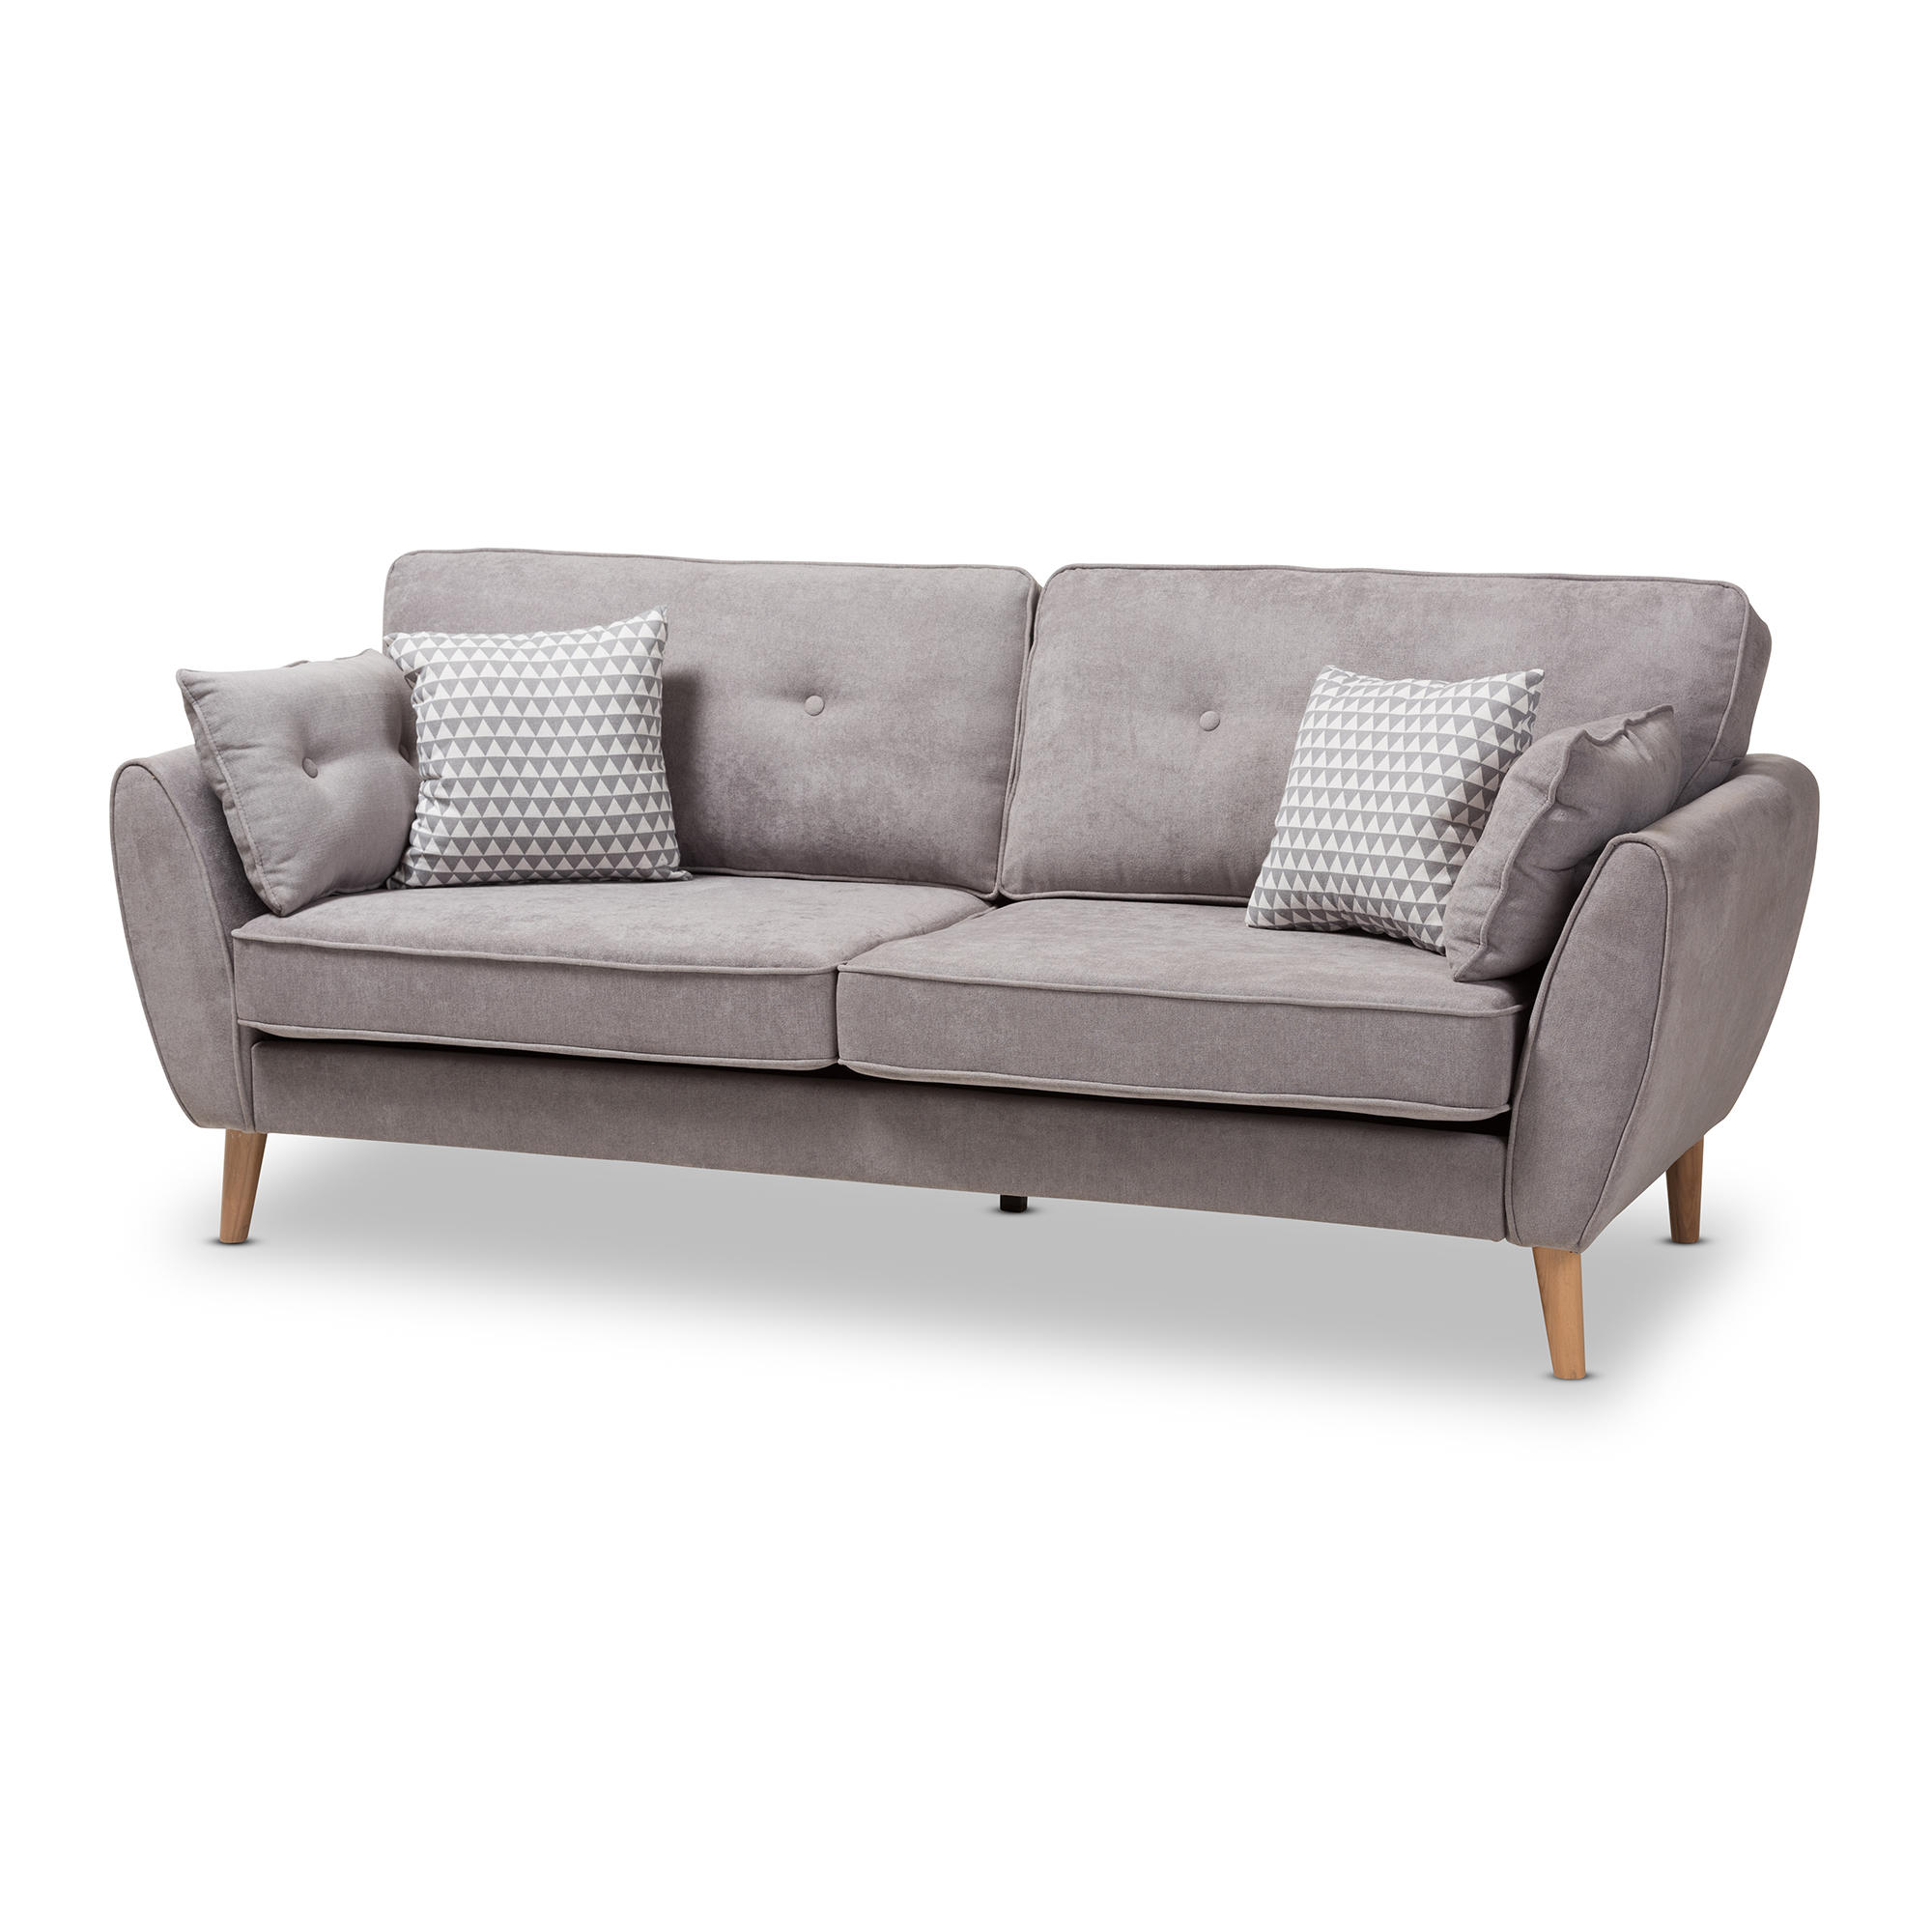 Baxton Studio Miranda Mid Century Modern Light Grey Fabric Upholstered Sofa  Affordable Modern Furniture In